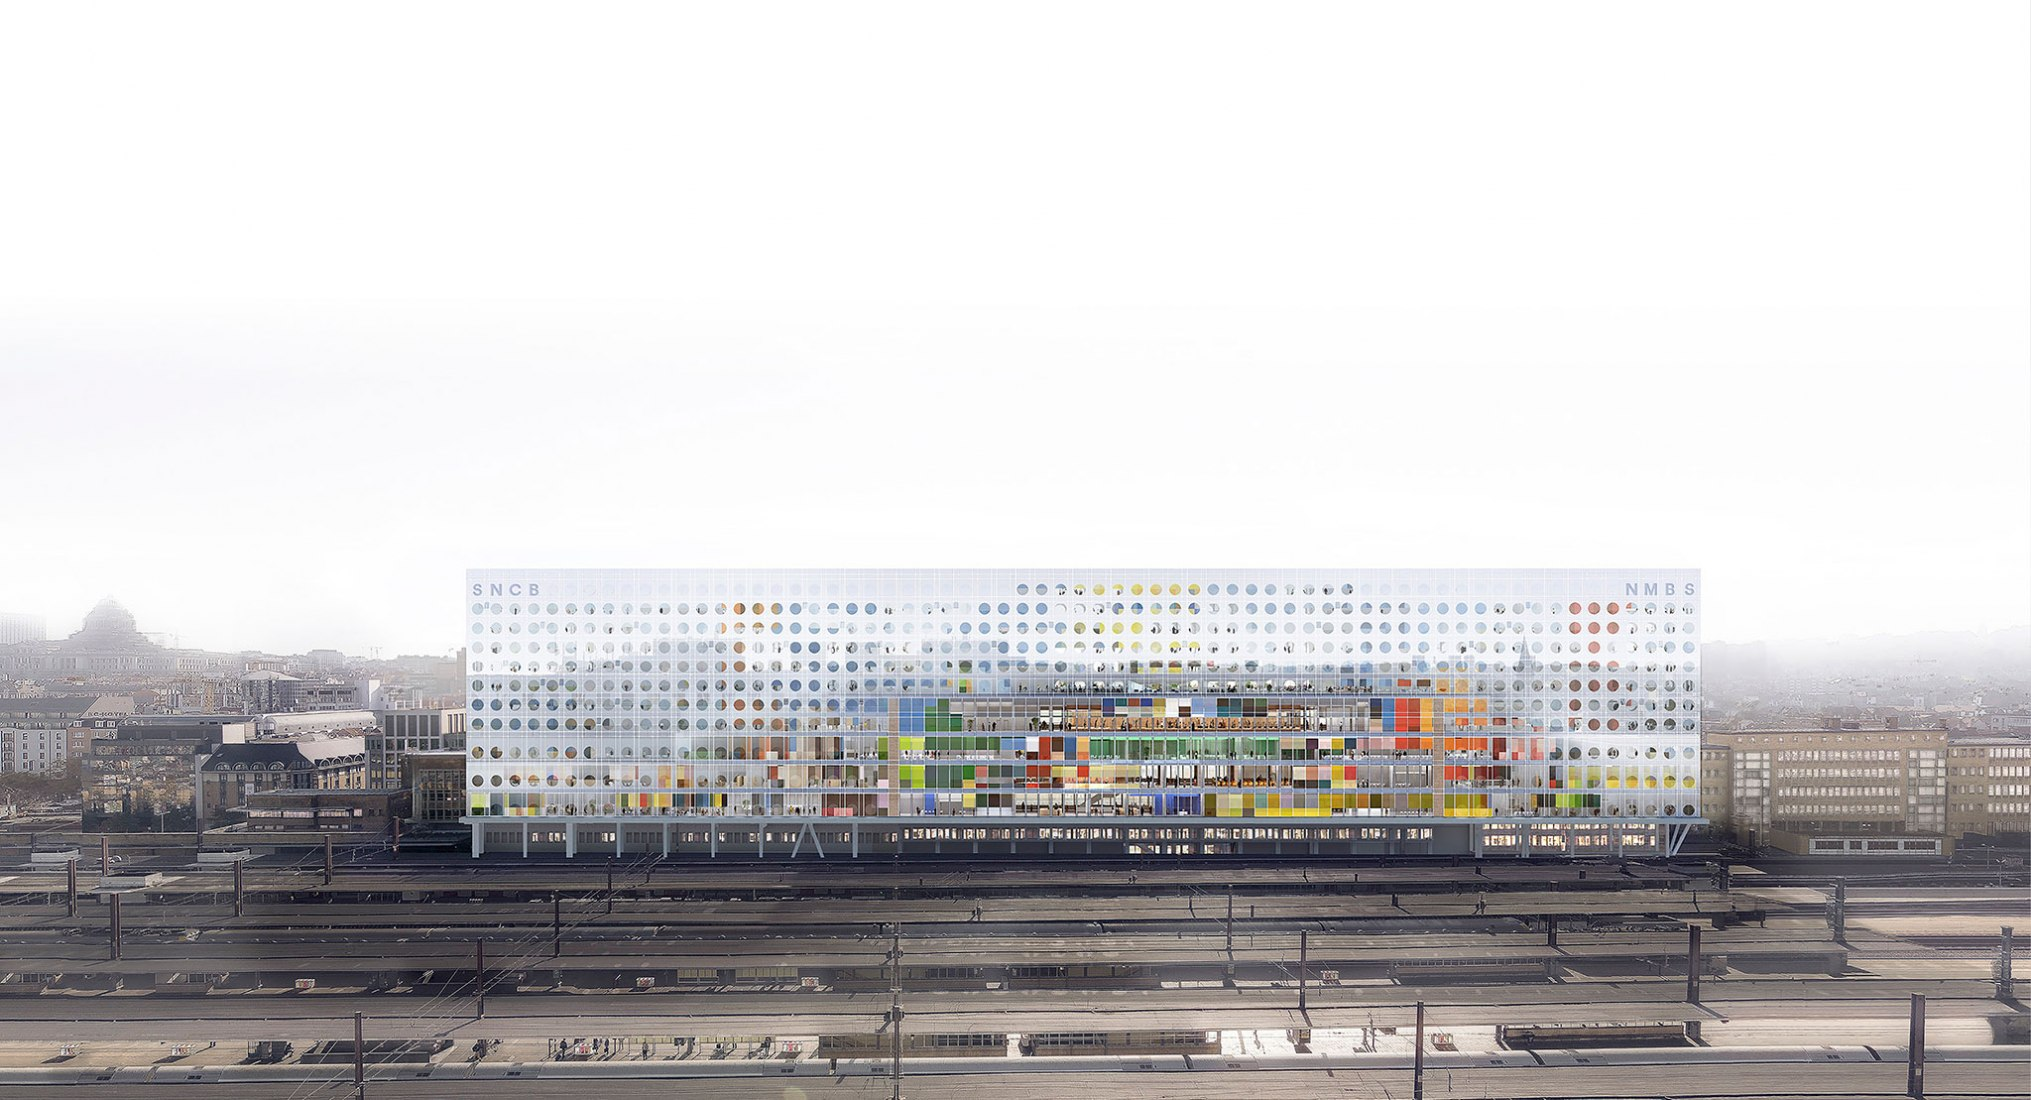 New Headquarters of SNCB NMBS by OMA/Reinier de Graaf. Image by Luxigon